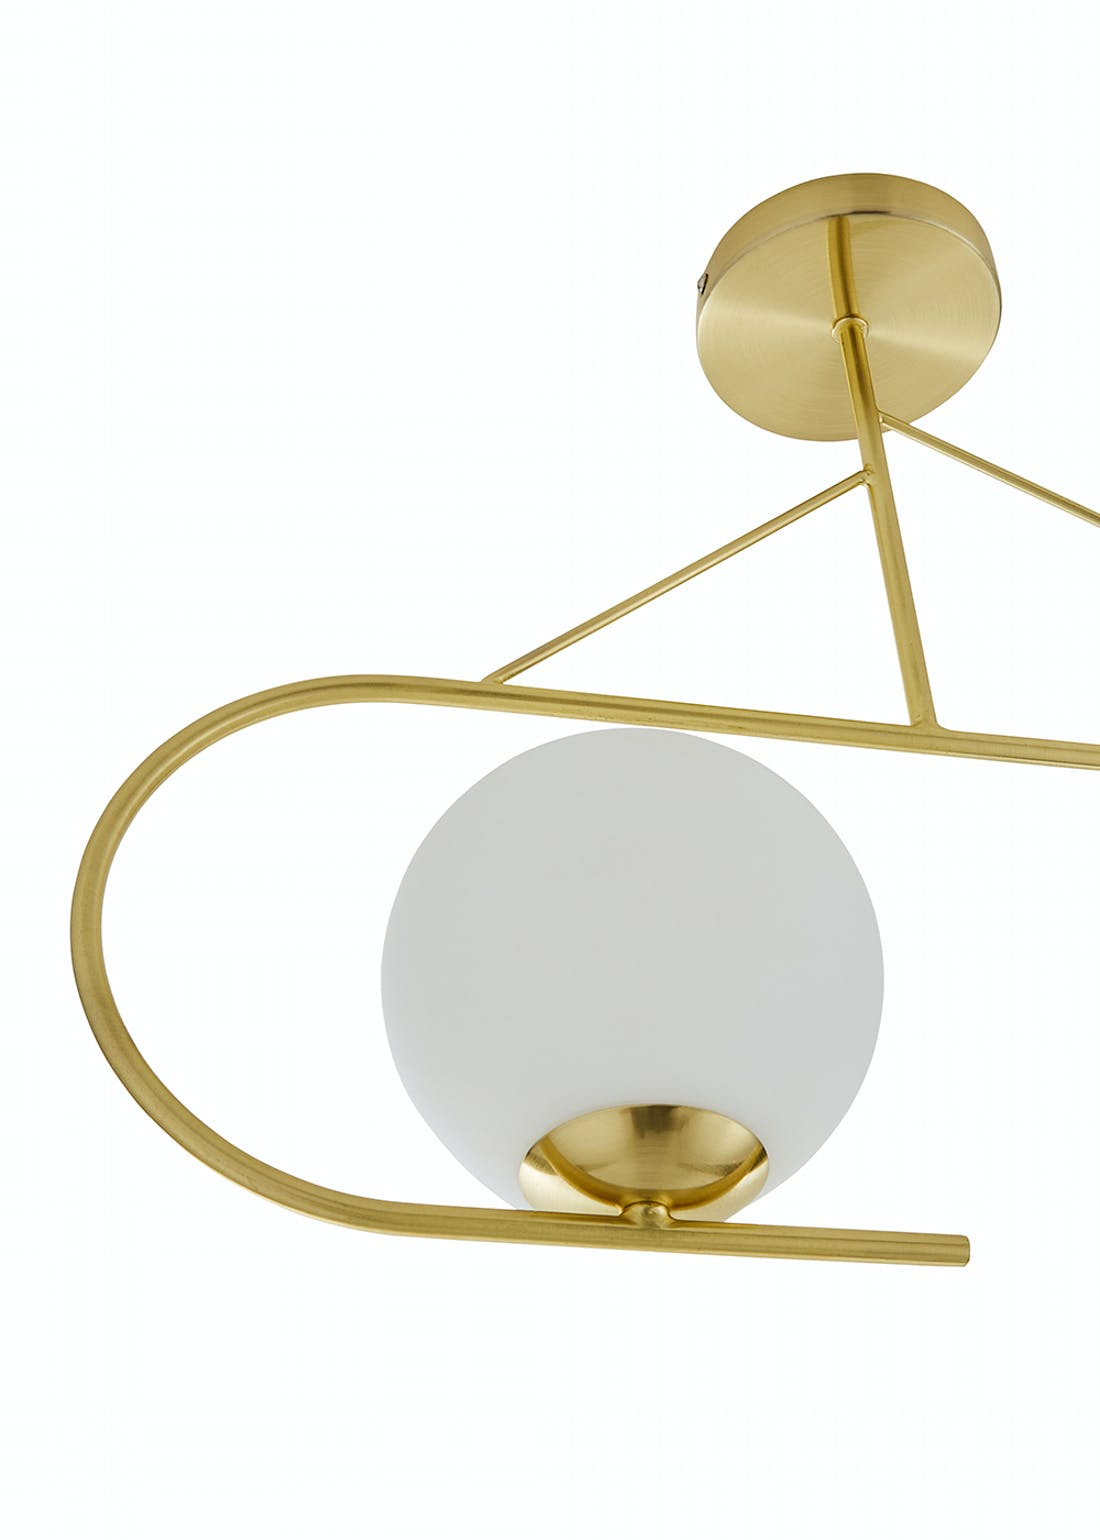 Balanced Bar Pendant Brass Ceiling Light (62cm x 35cm x 15cm)